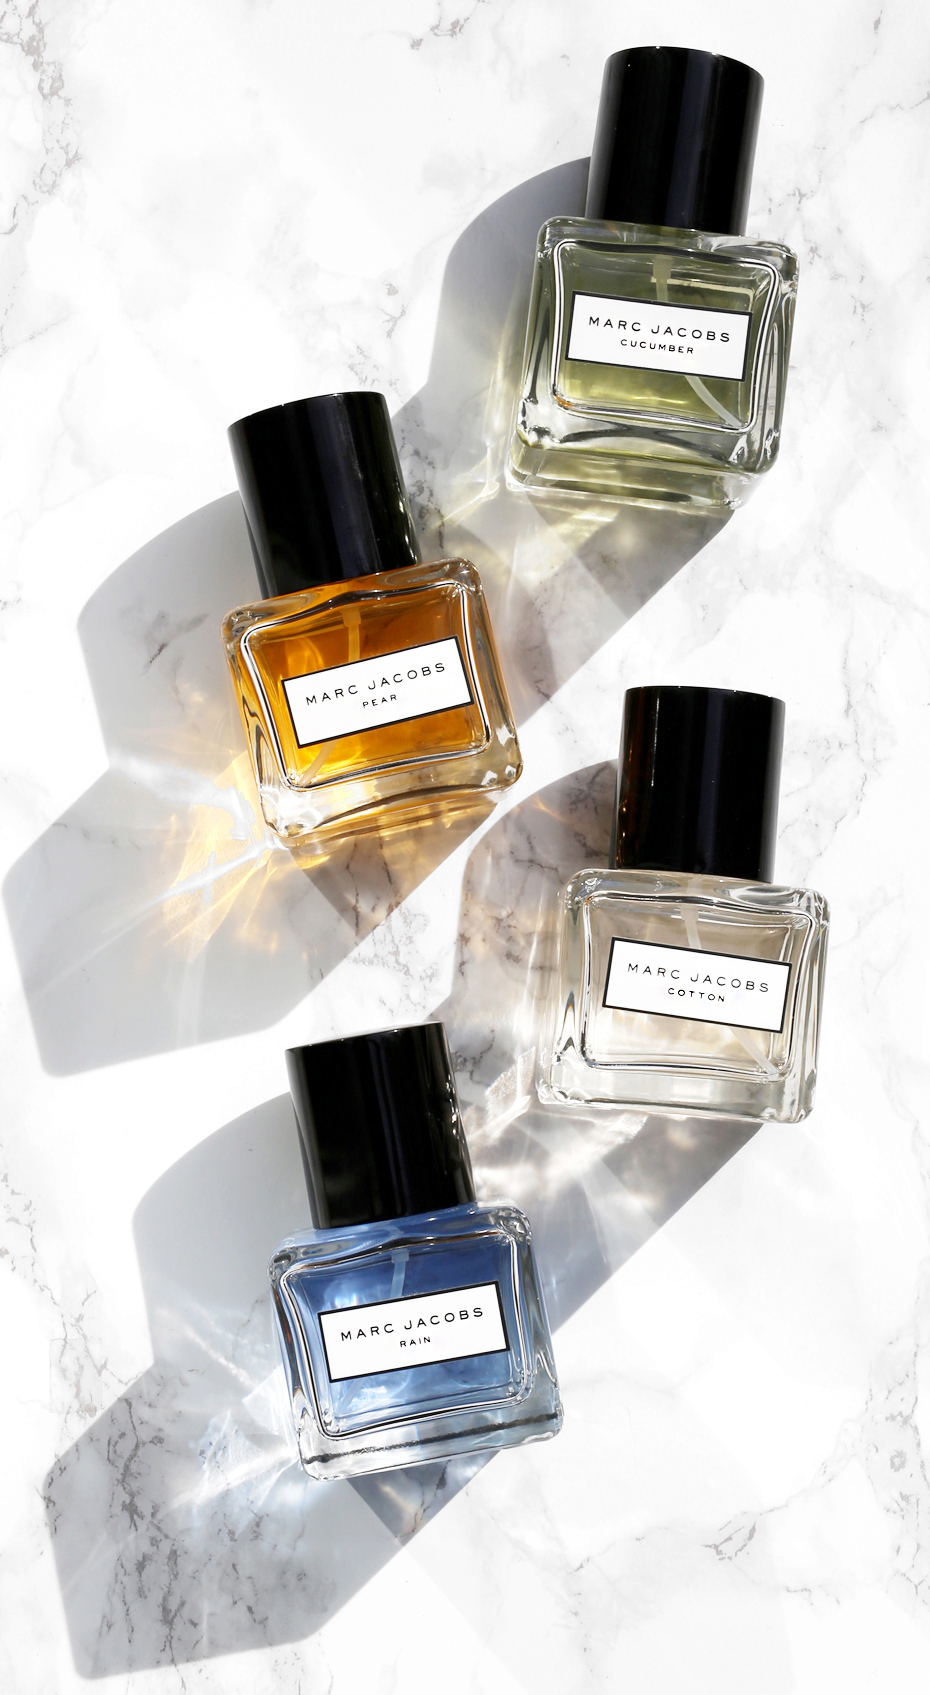 Marc Jacobs Pear, Cucumber, Rain and Cotton perfume collection_1806.JPG